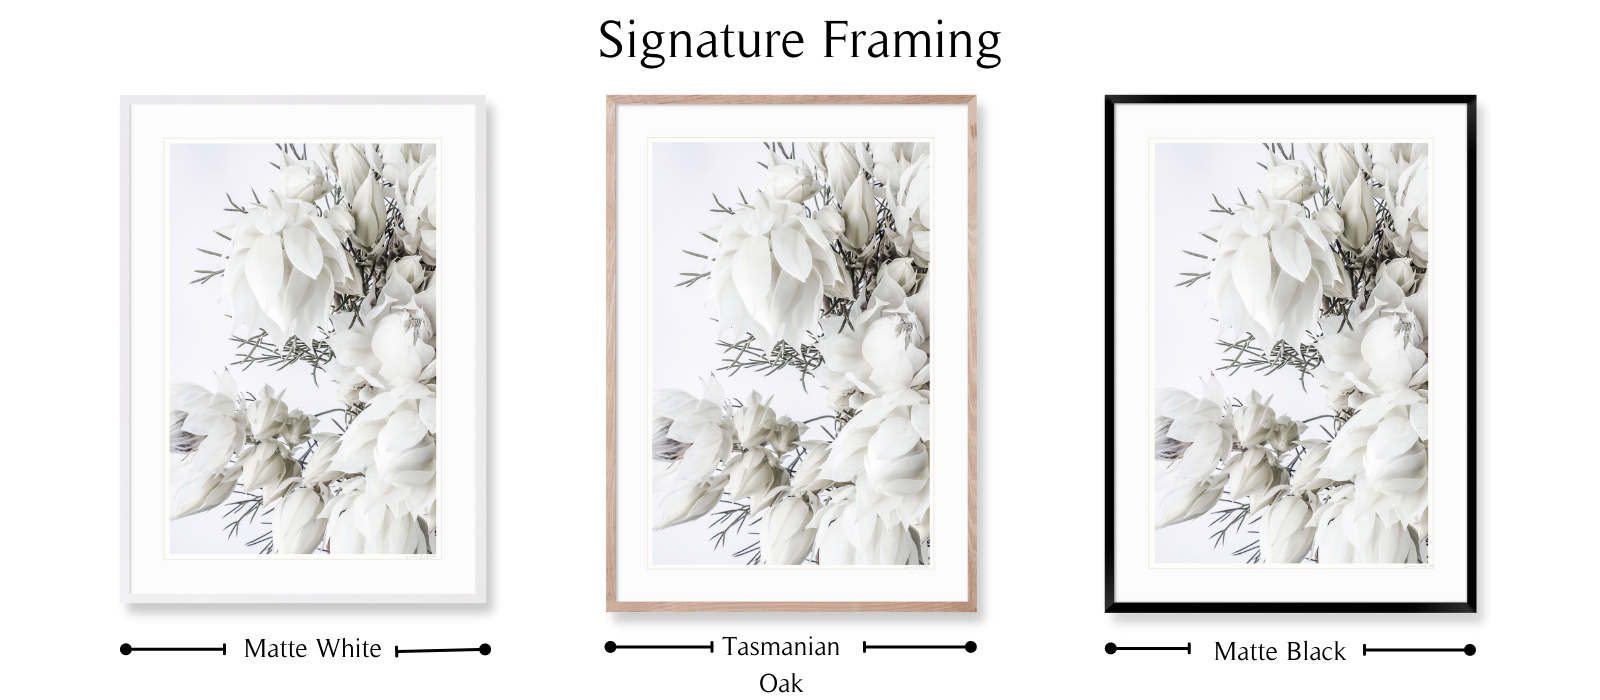 Blushing #1 By Lauren Daly | SIGNATURE Framing Style | LD Art House